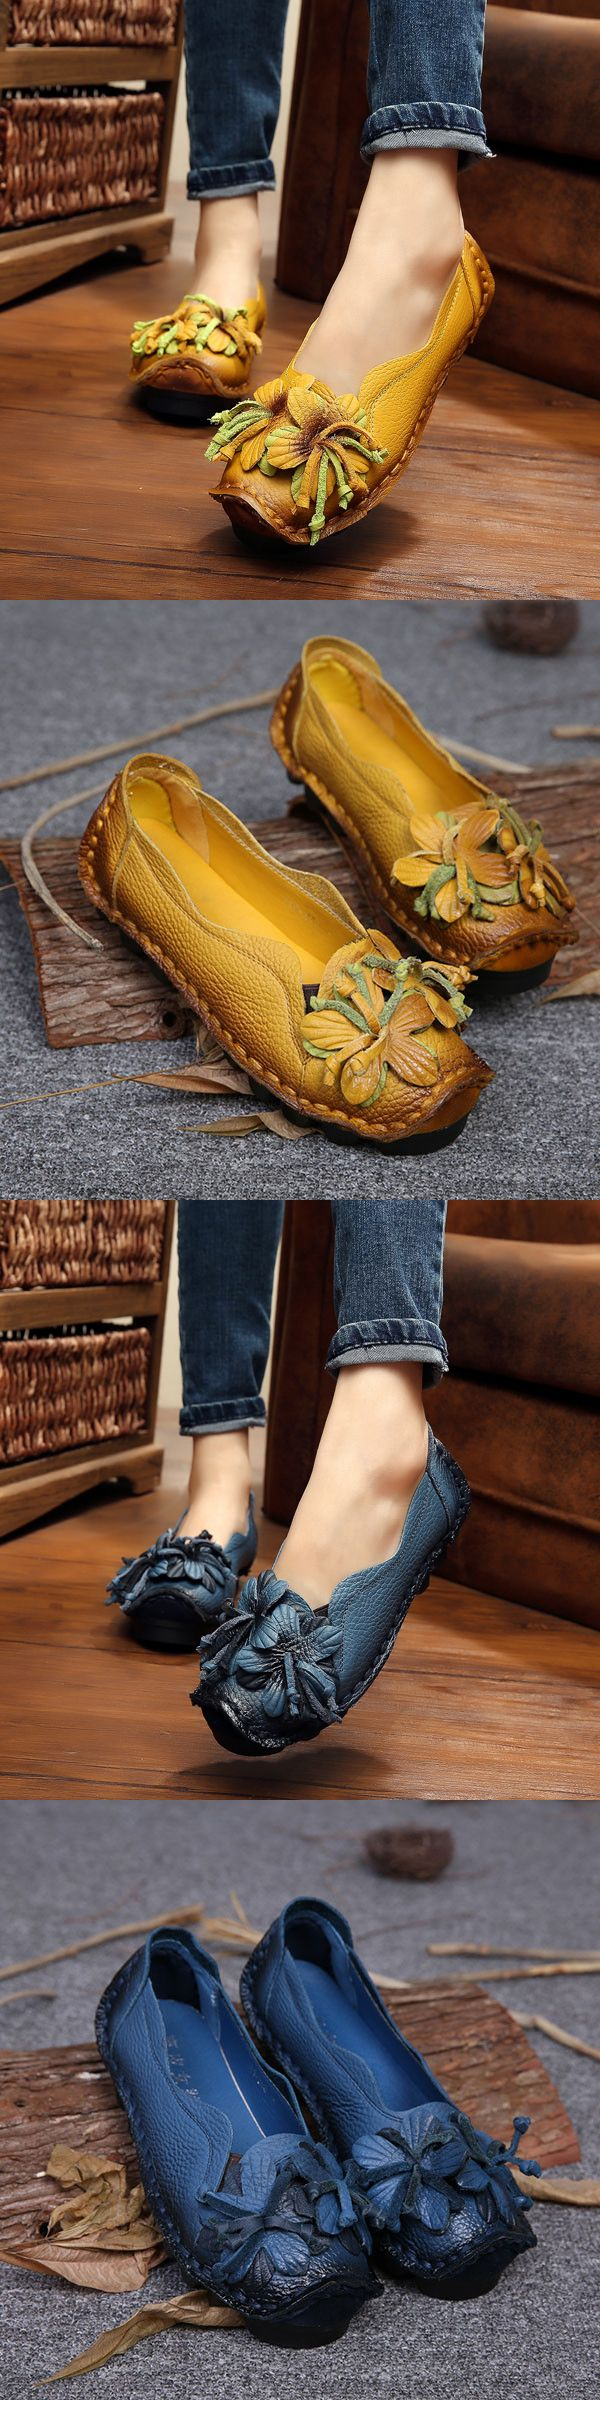 US$26.46 Socofy Genuine Leather Handmade Flower Loafers Soft Flat Casual Shoes